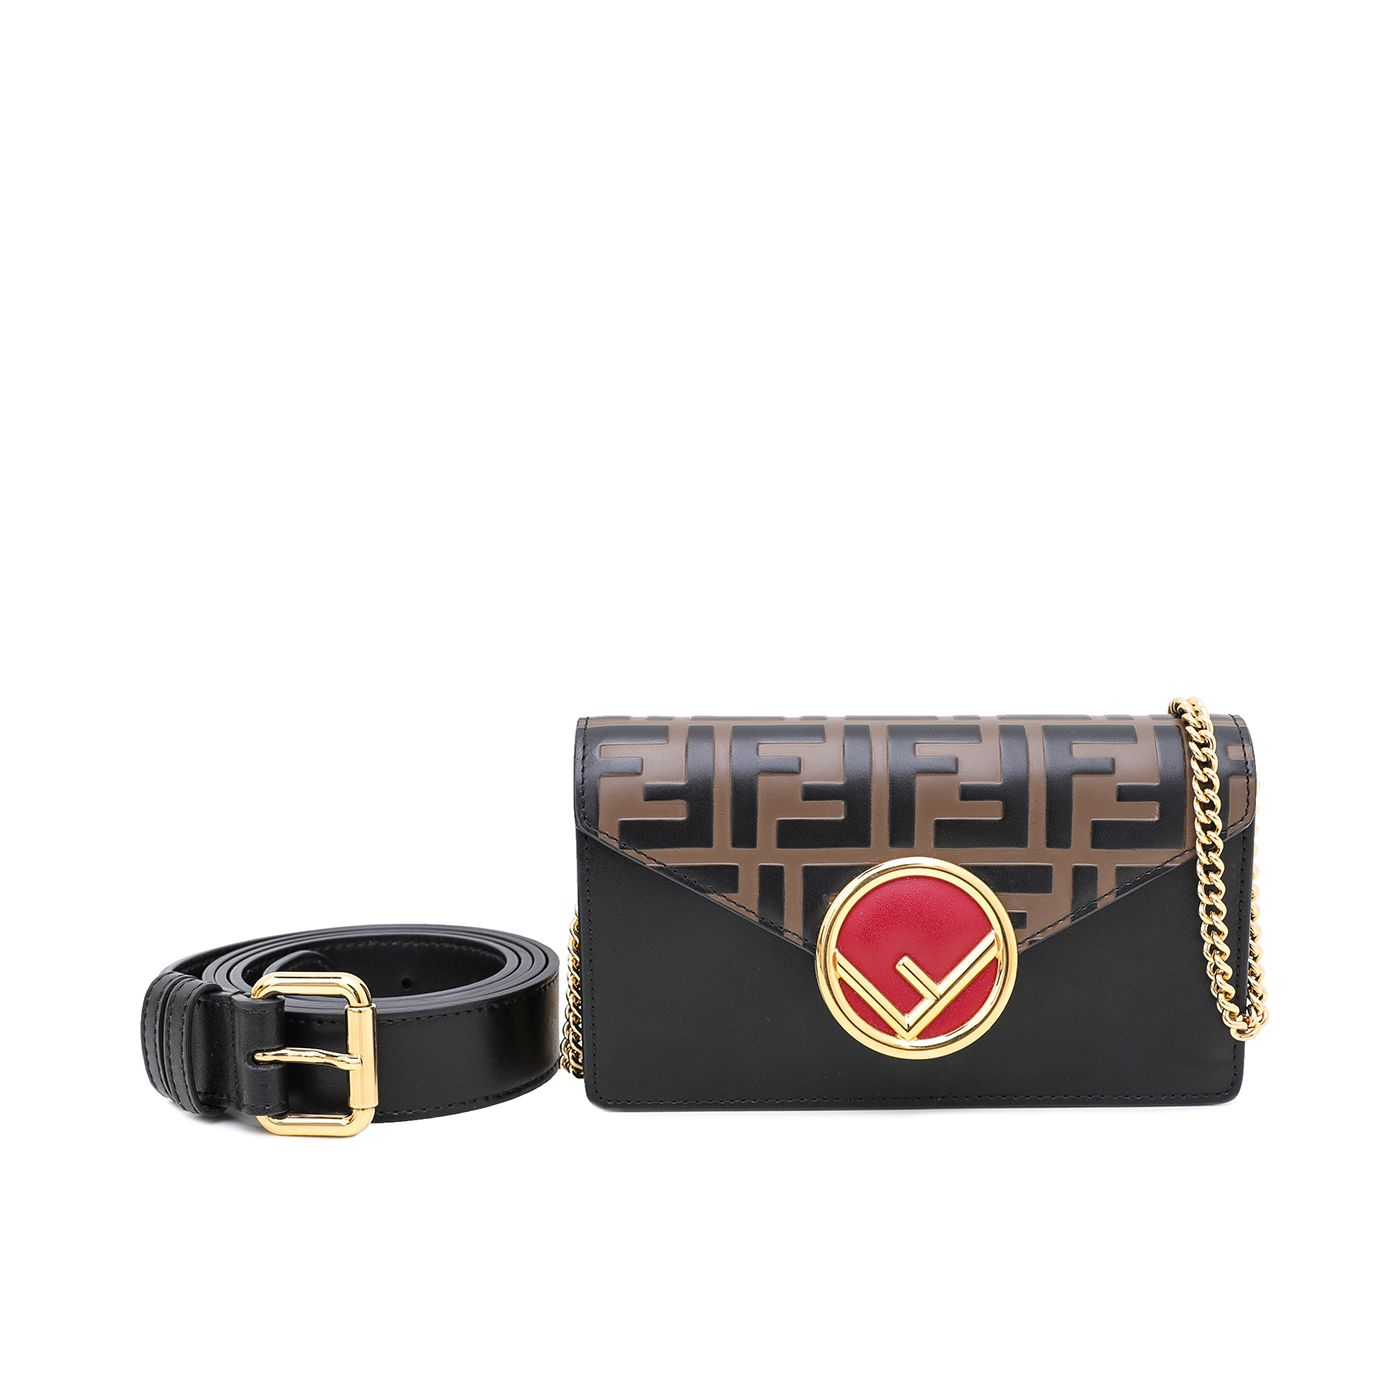 Fendi Multicolor Belt Bag